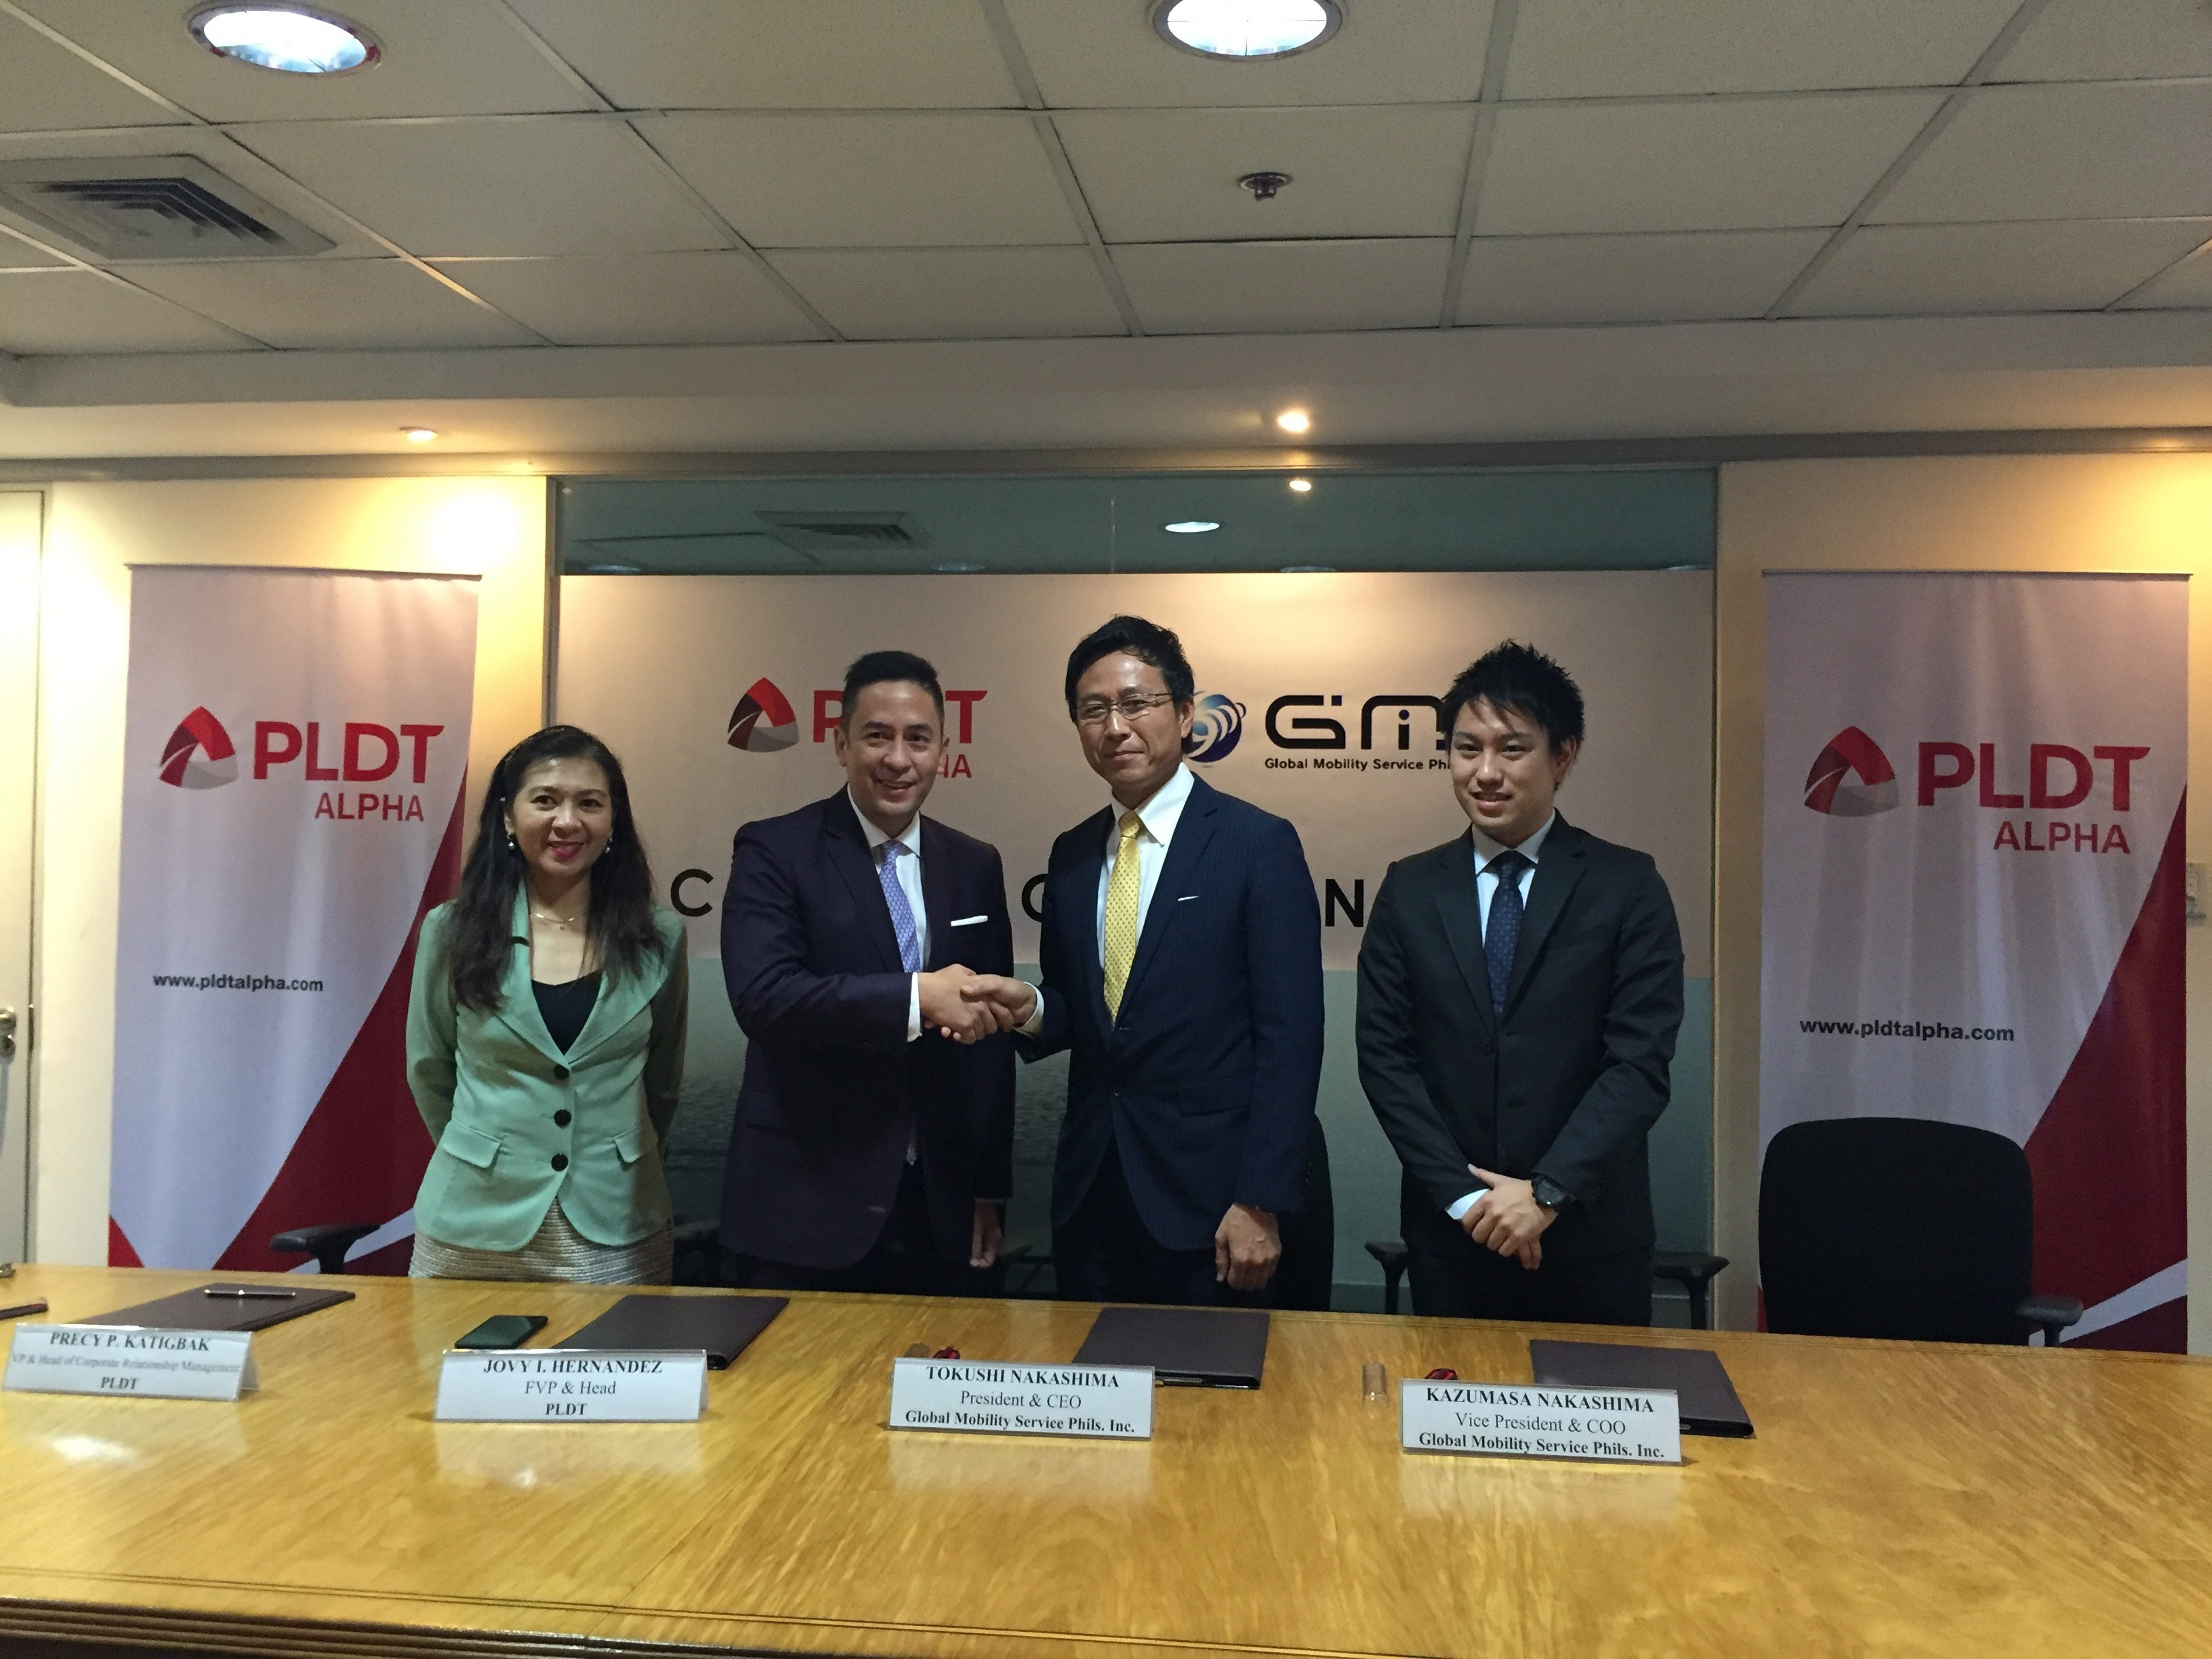 First Vice President and Head of PLDT ALPHA, Mr. Jovy Hernandezと、GMS代表取締役社長 兼 CEOの中島 徳至